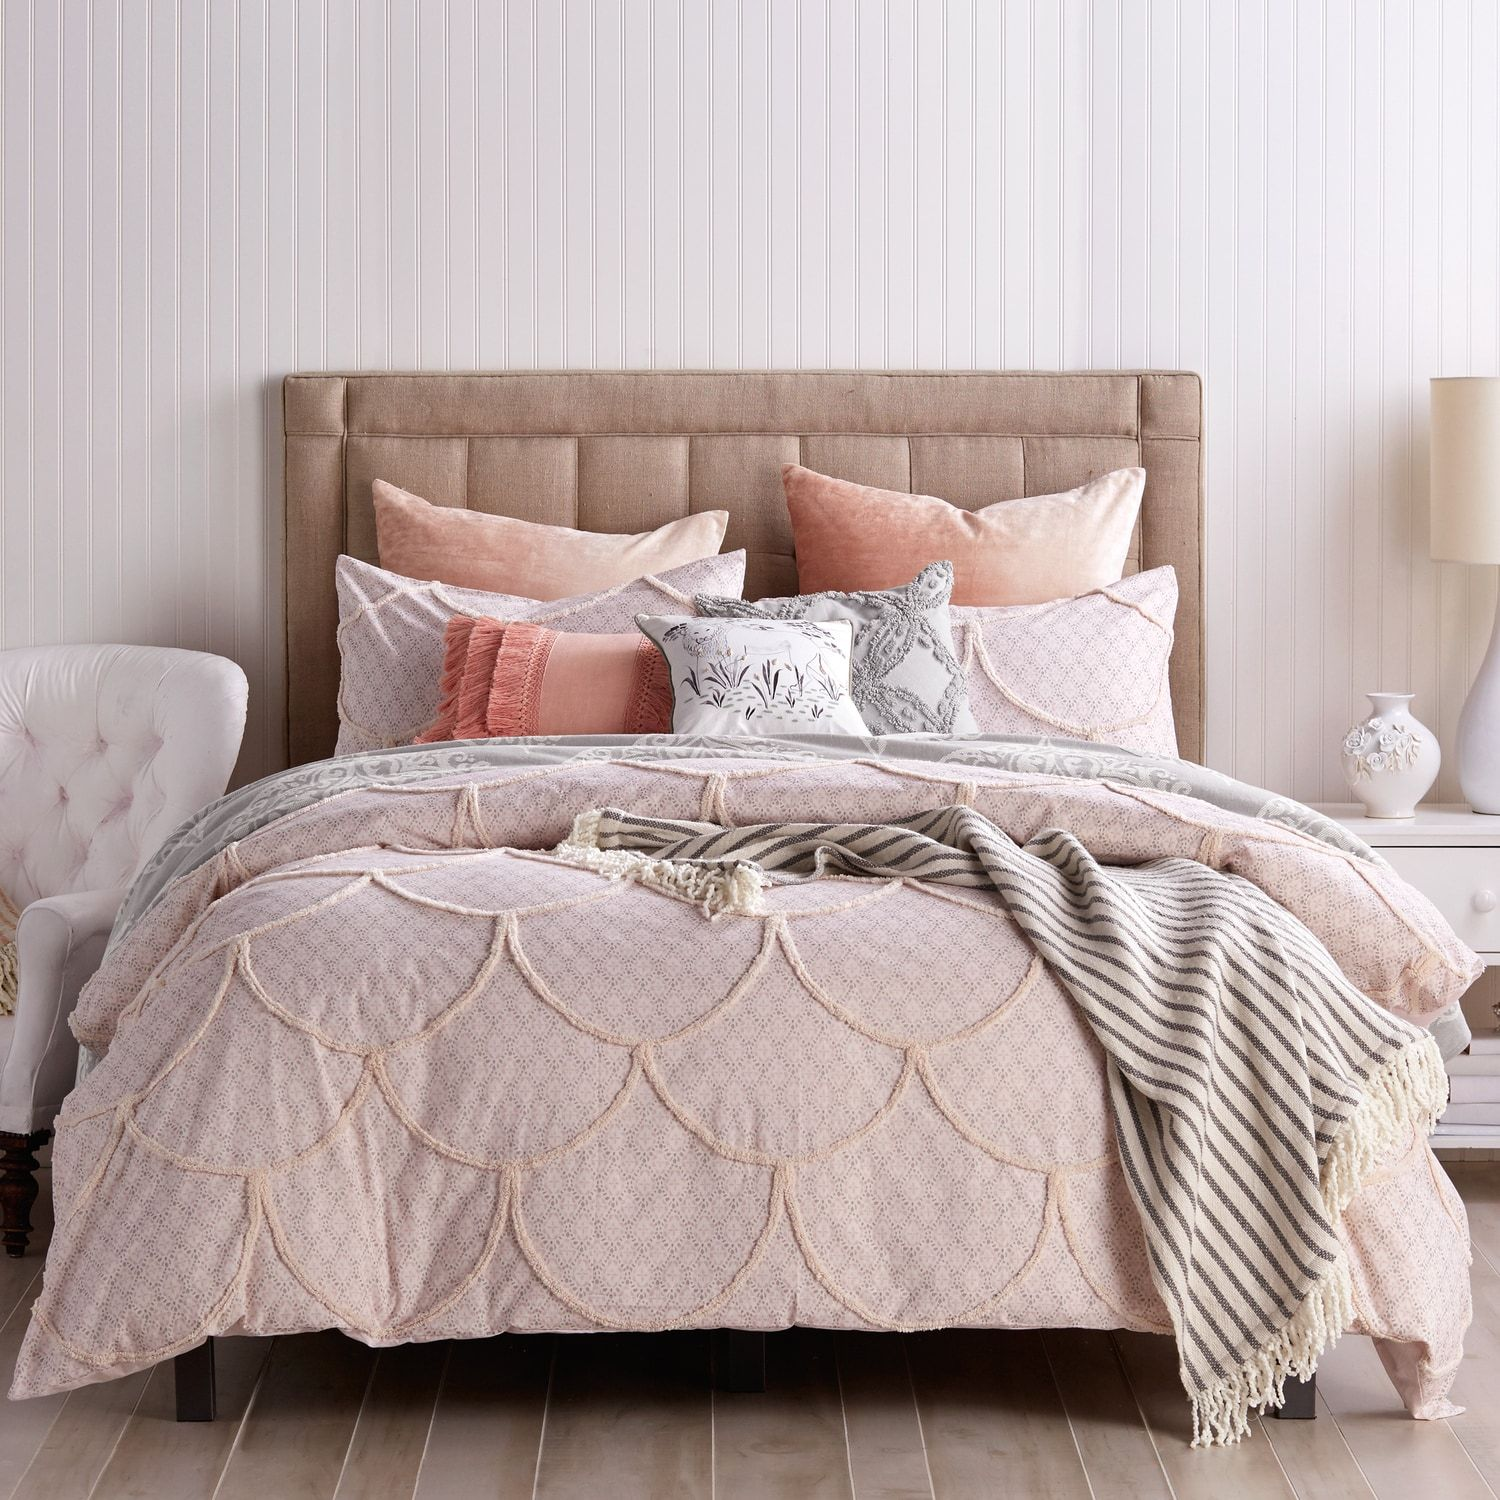 quilts lb scalloped quilt cushion raised damask cover and bedroom edge scallop duvet